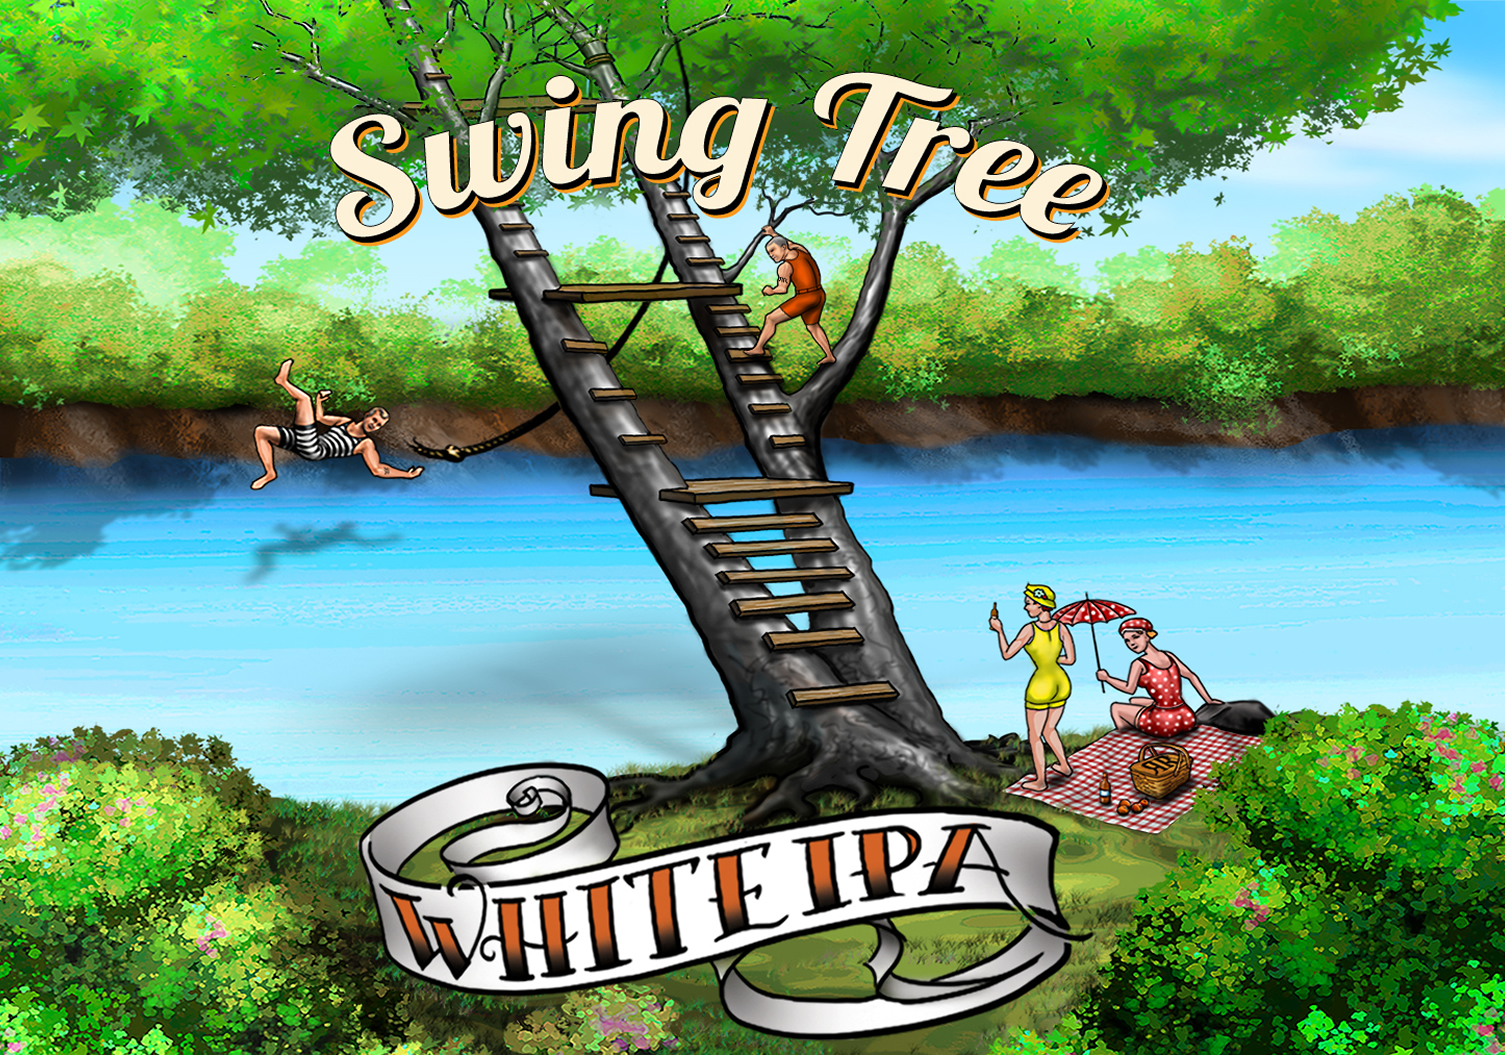 Swing Tree White IPA